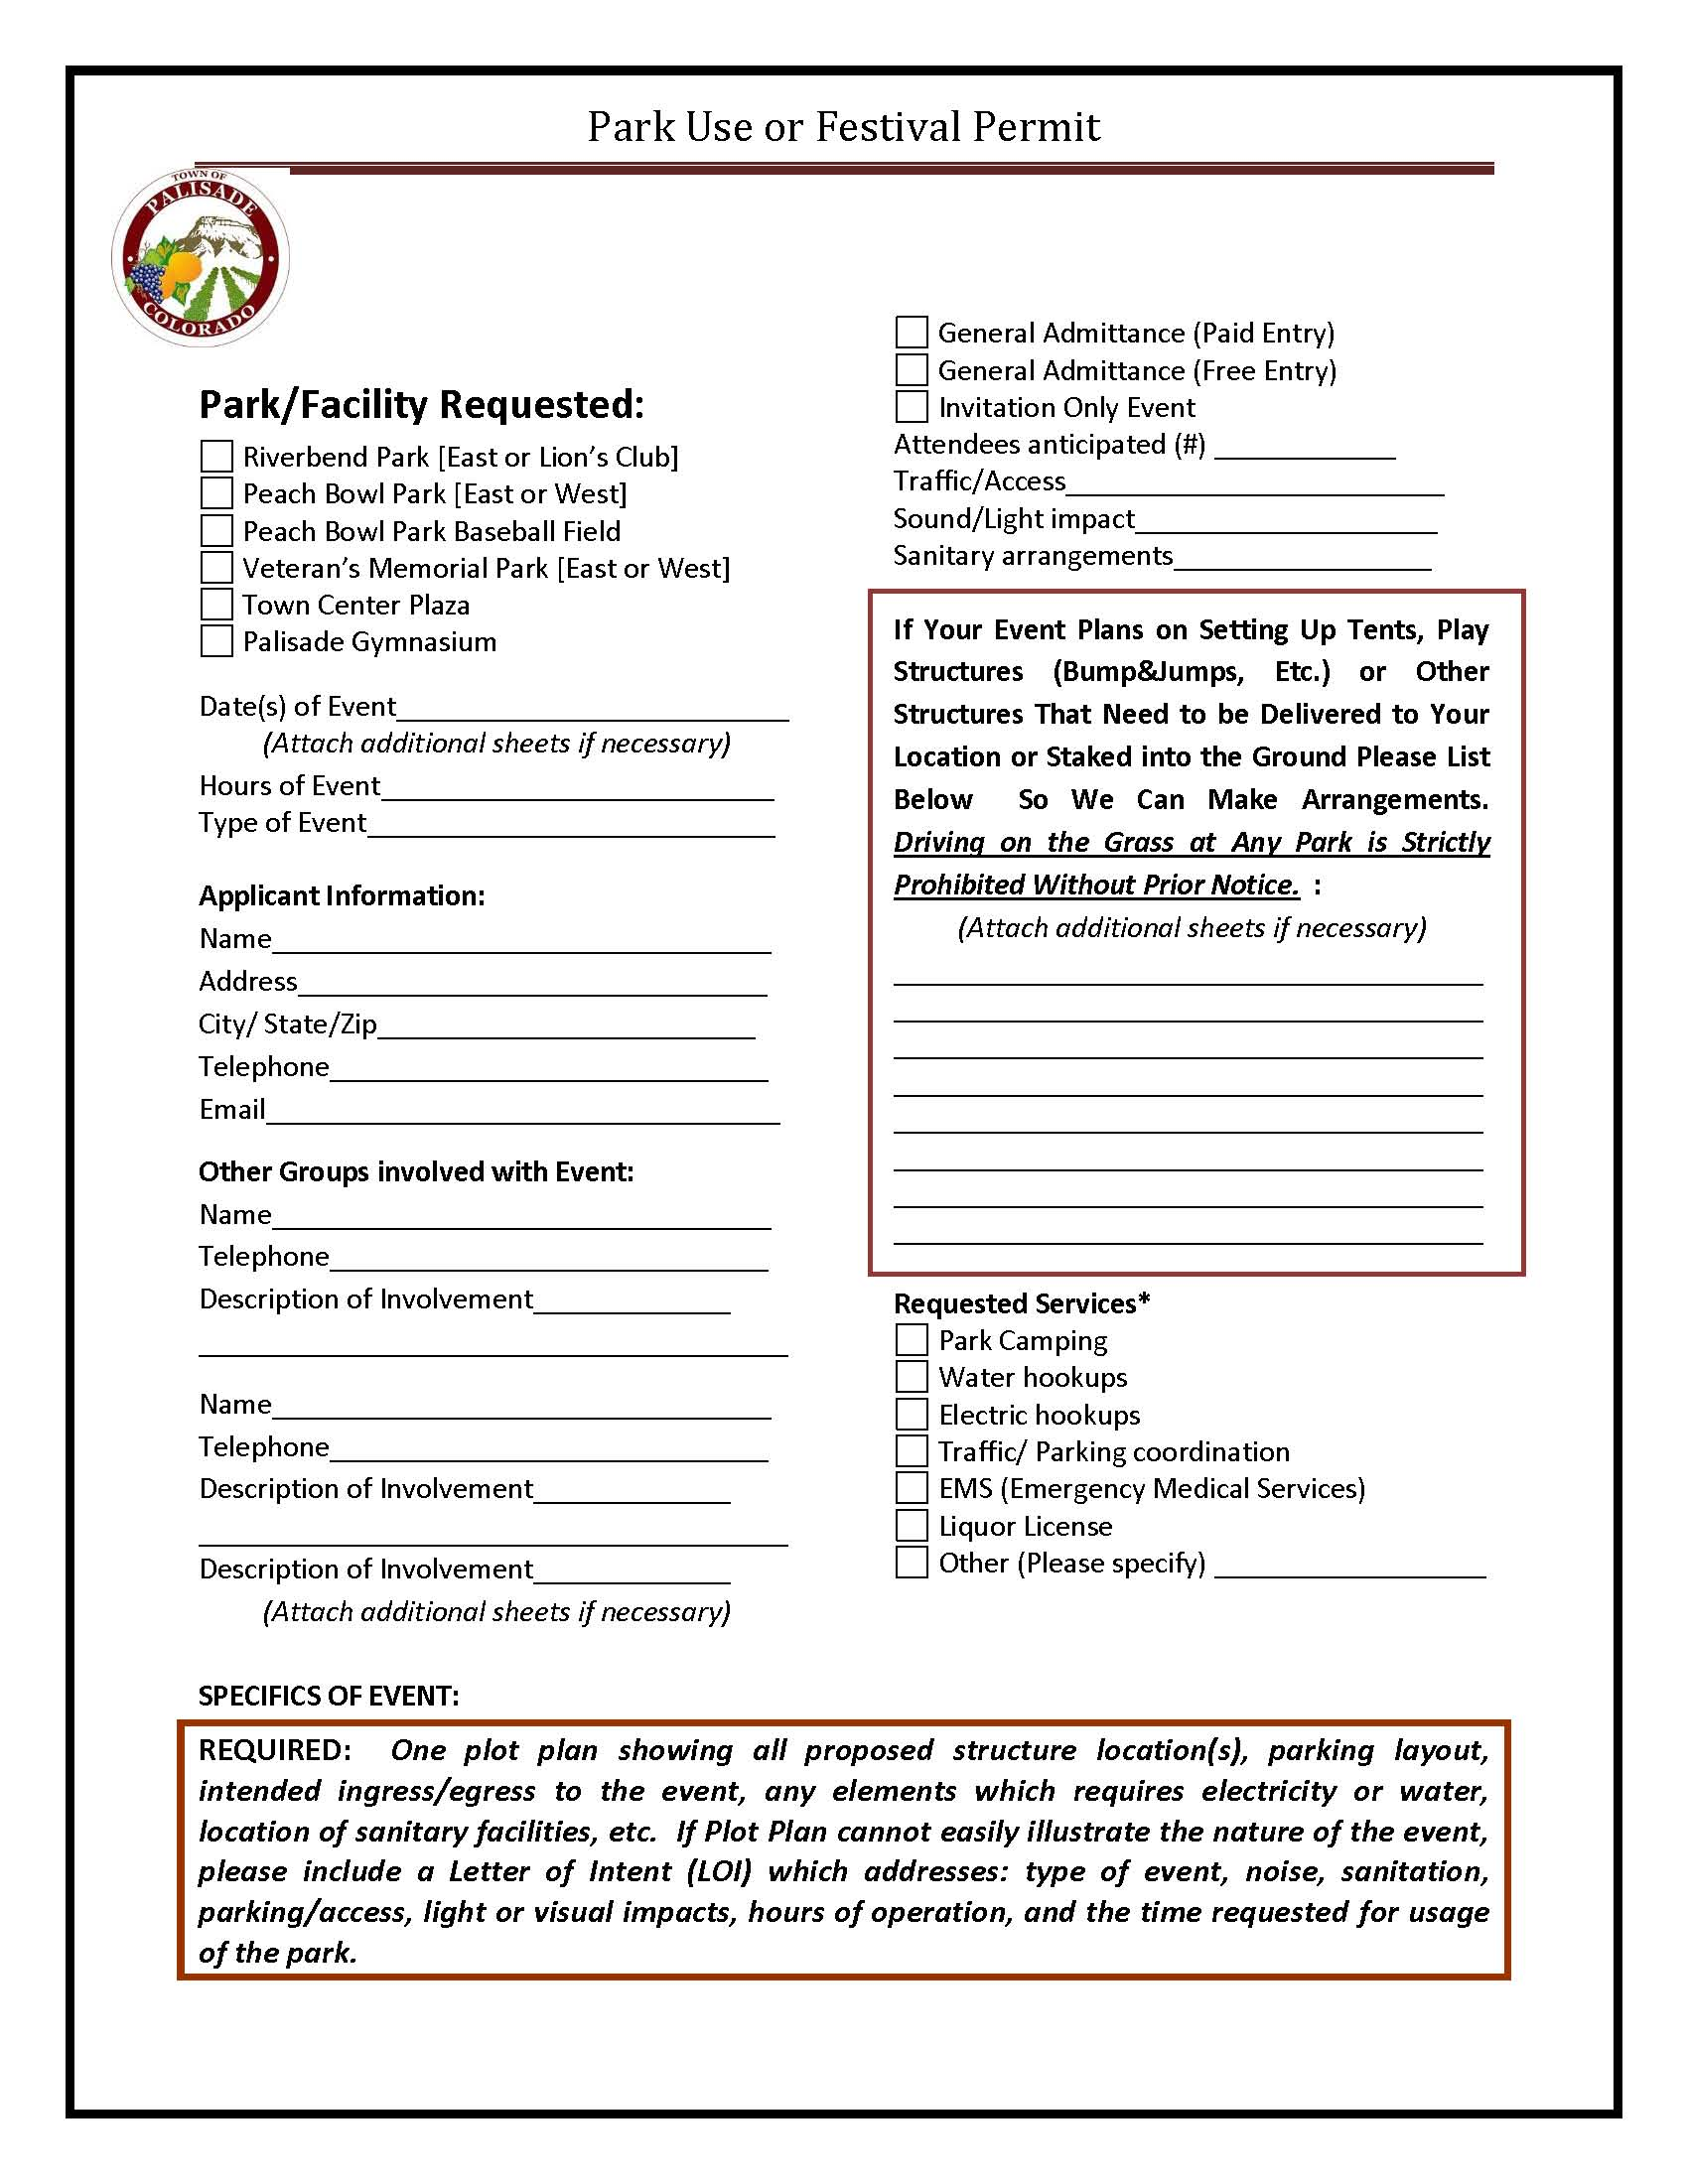 Park Use or Festival Permit Page 1